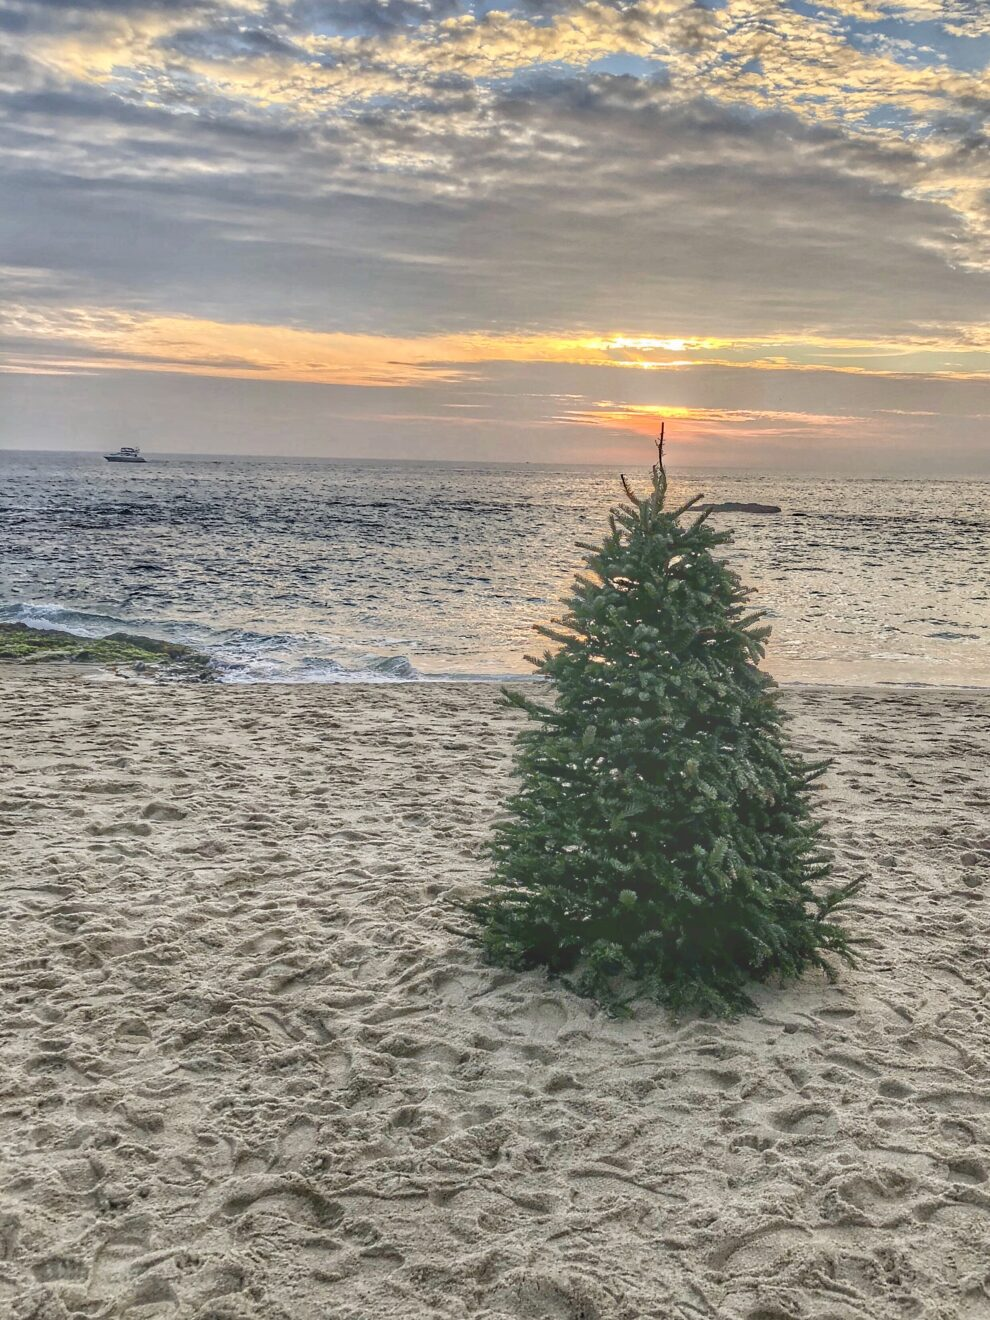 Only one decoration adorns this christmas tree the sunset of a beautiful day t20 lrapmb